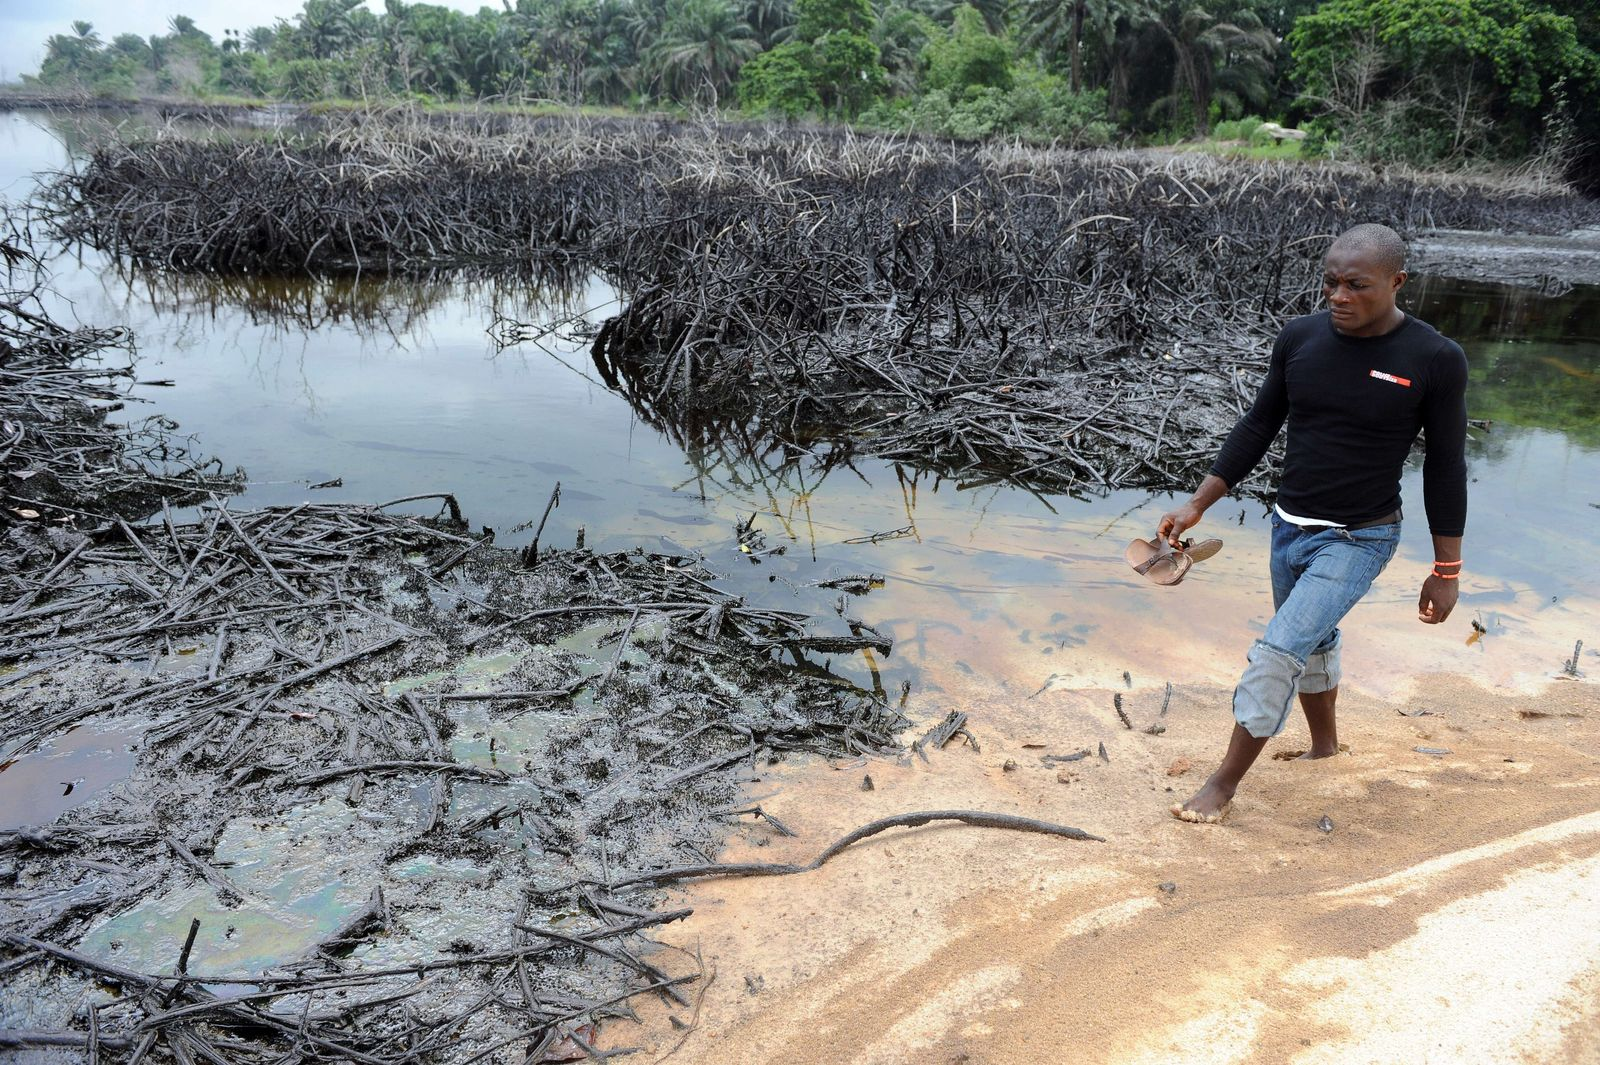 NIGERIA-OIL-SPILL-ENVIRONMENT-US